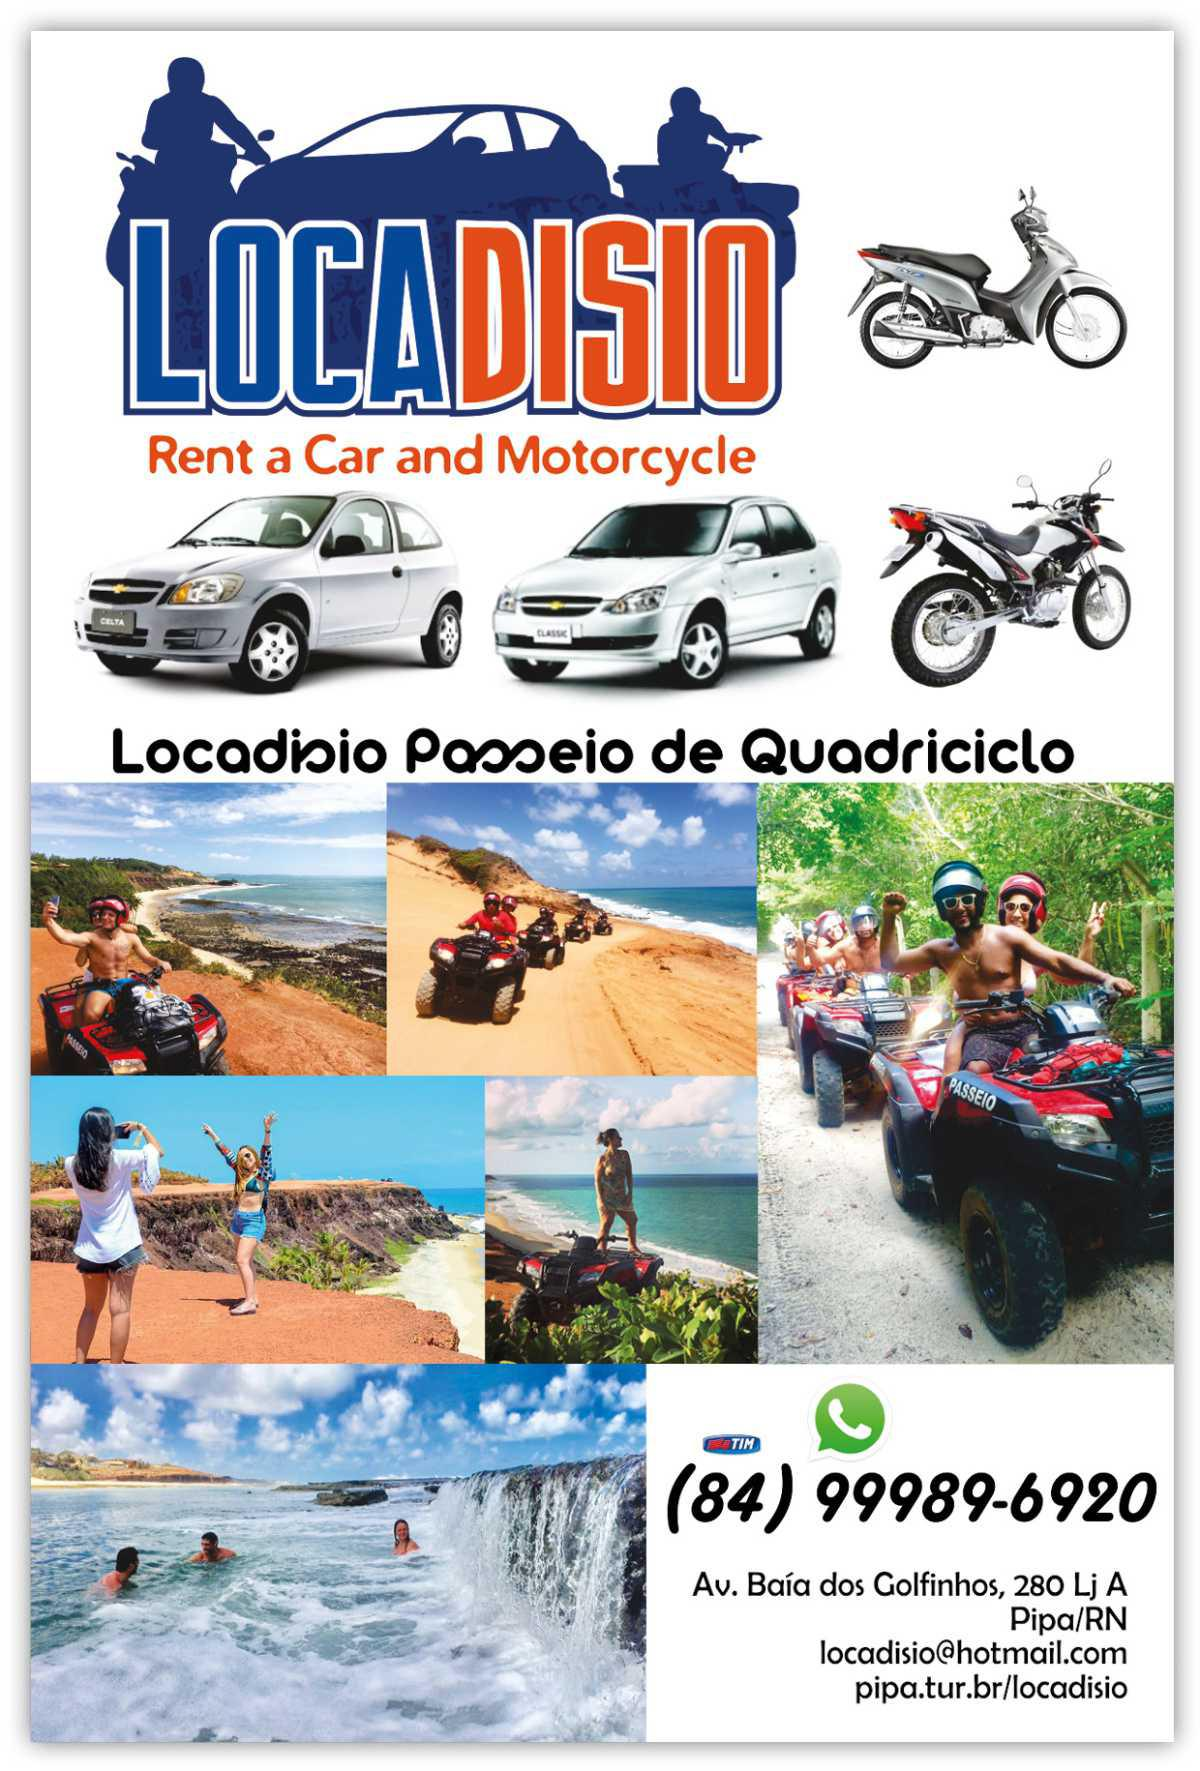 Locadisio Rent a Car